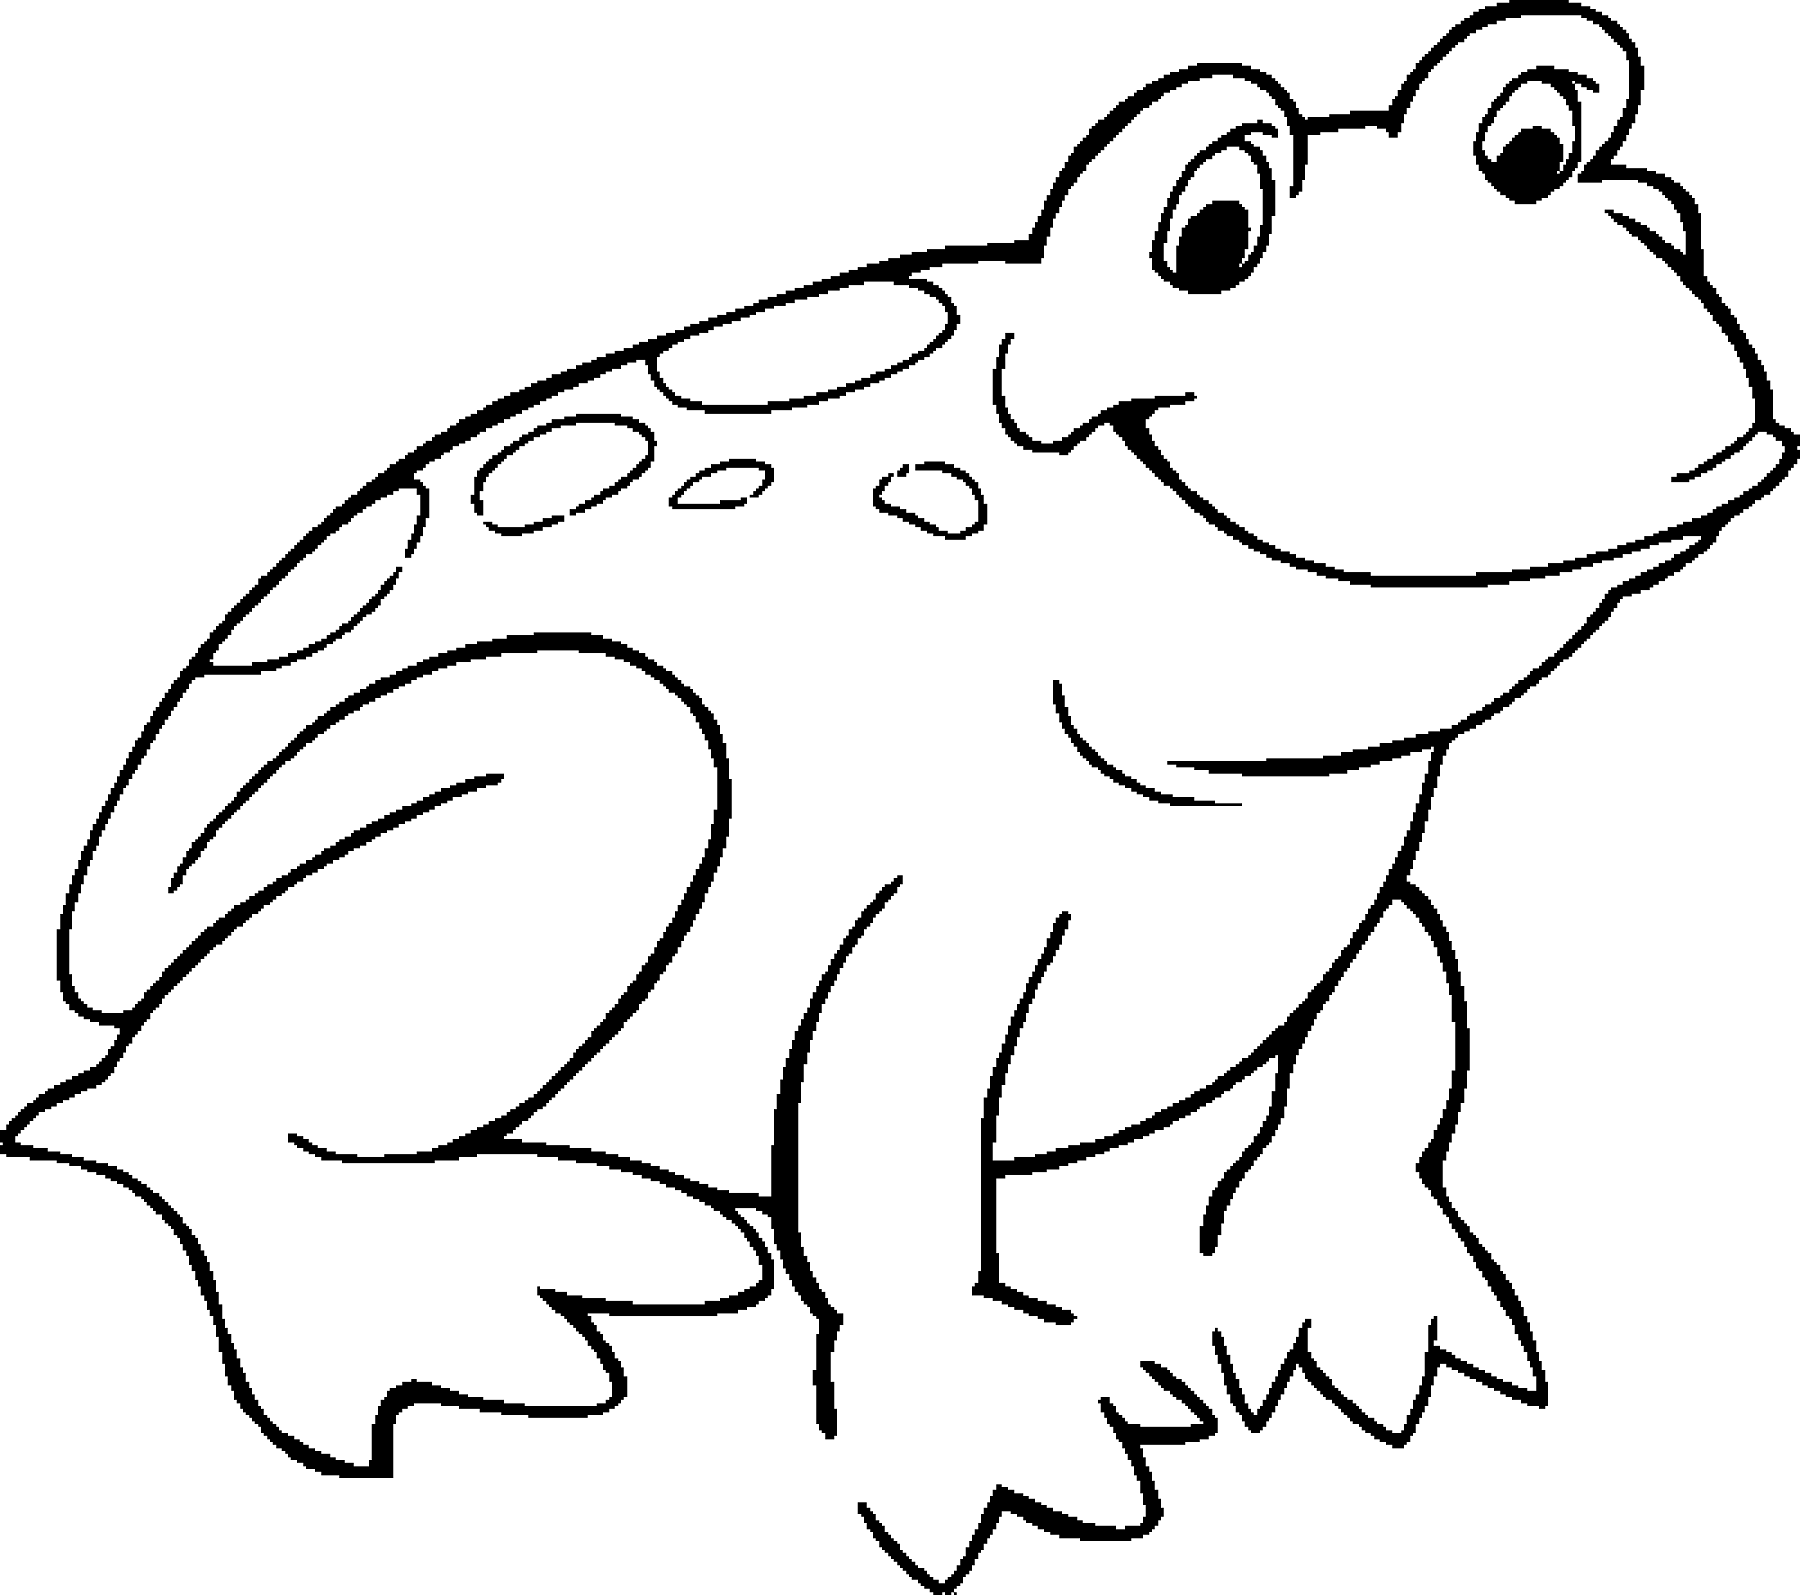 frog-color-sheet-simple